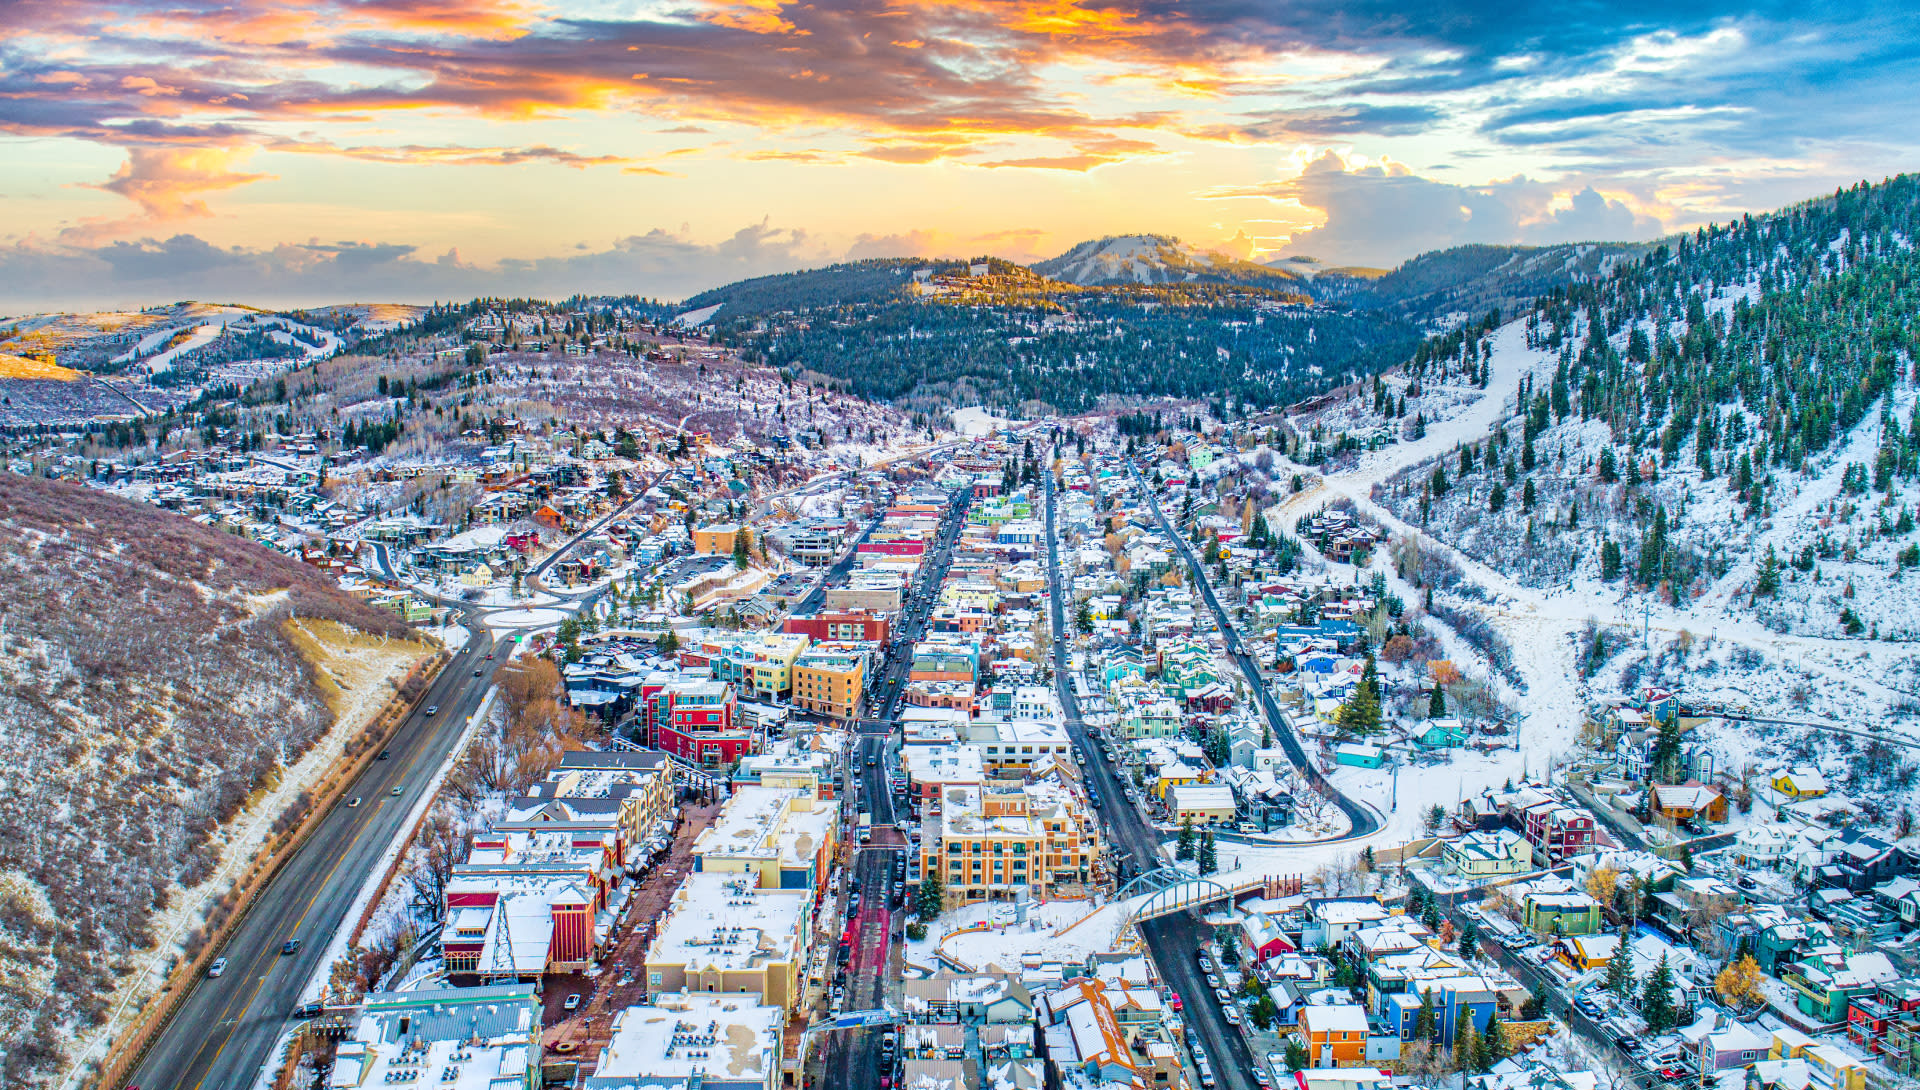 These Are the Don't-Miss Things to Do on a Park City Trip